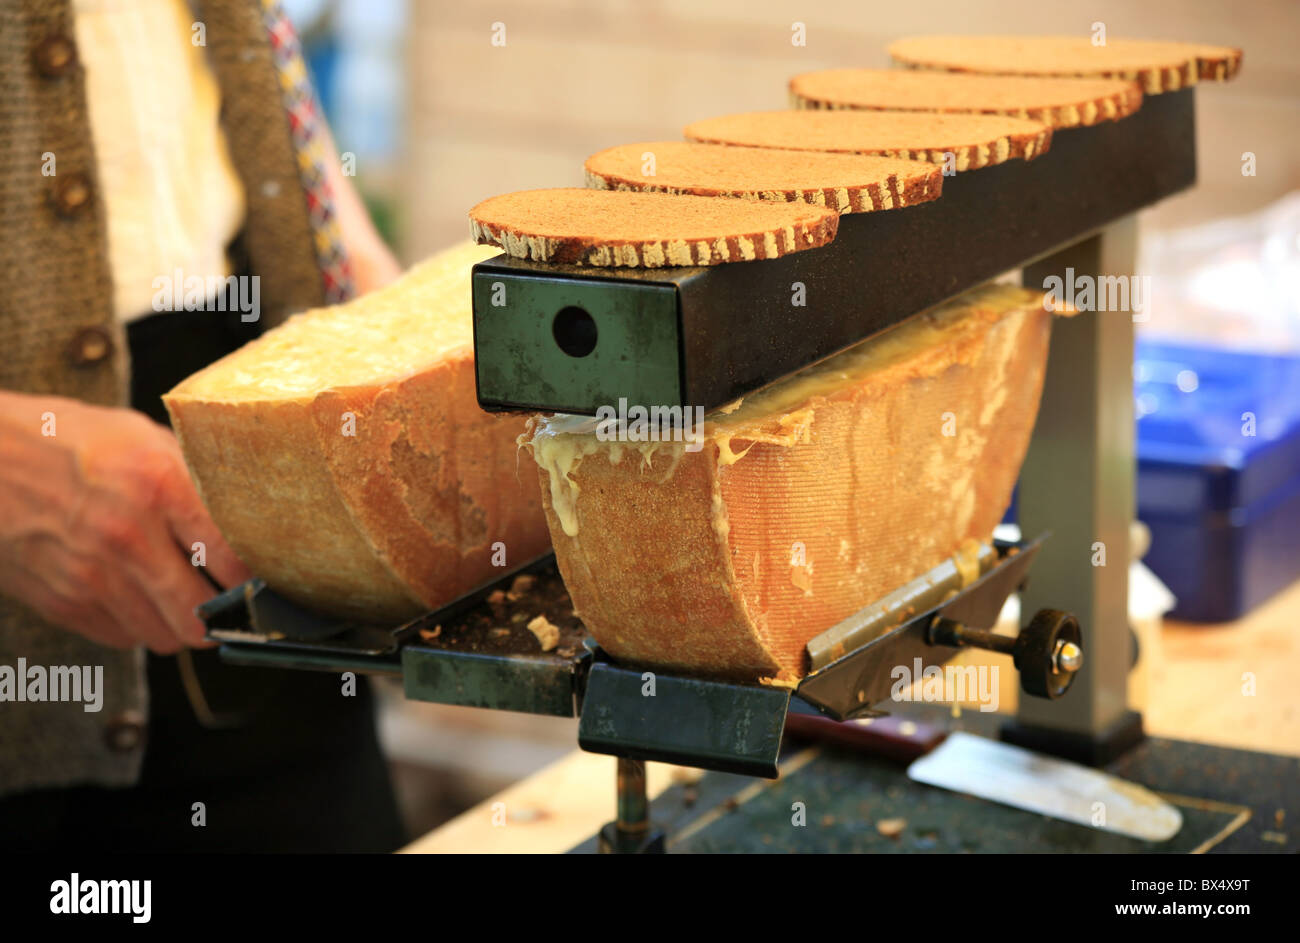 Man melting swiss raclette cheese to put it on toasted brown bread - Stock Image